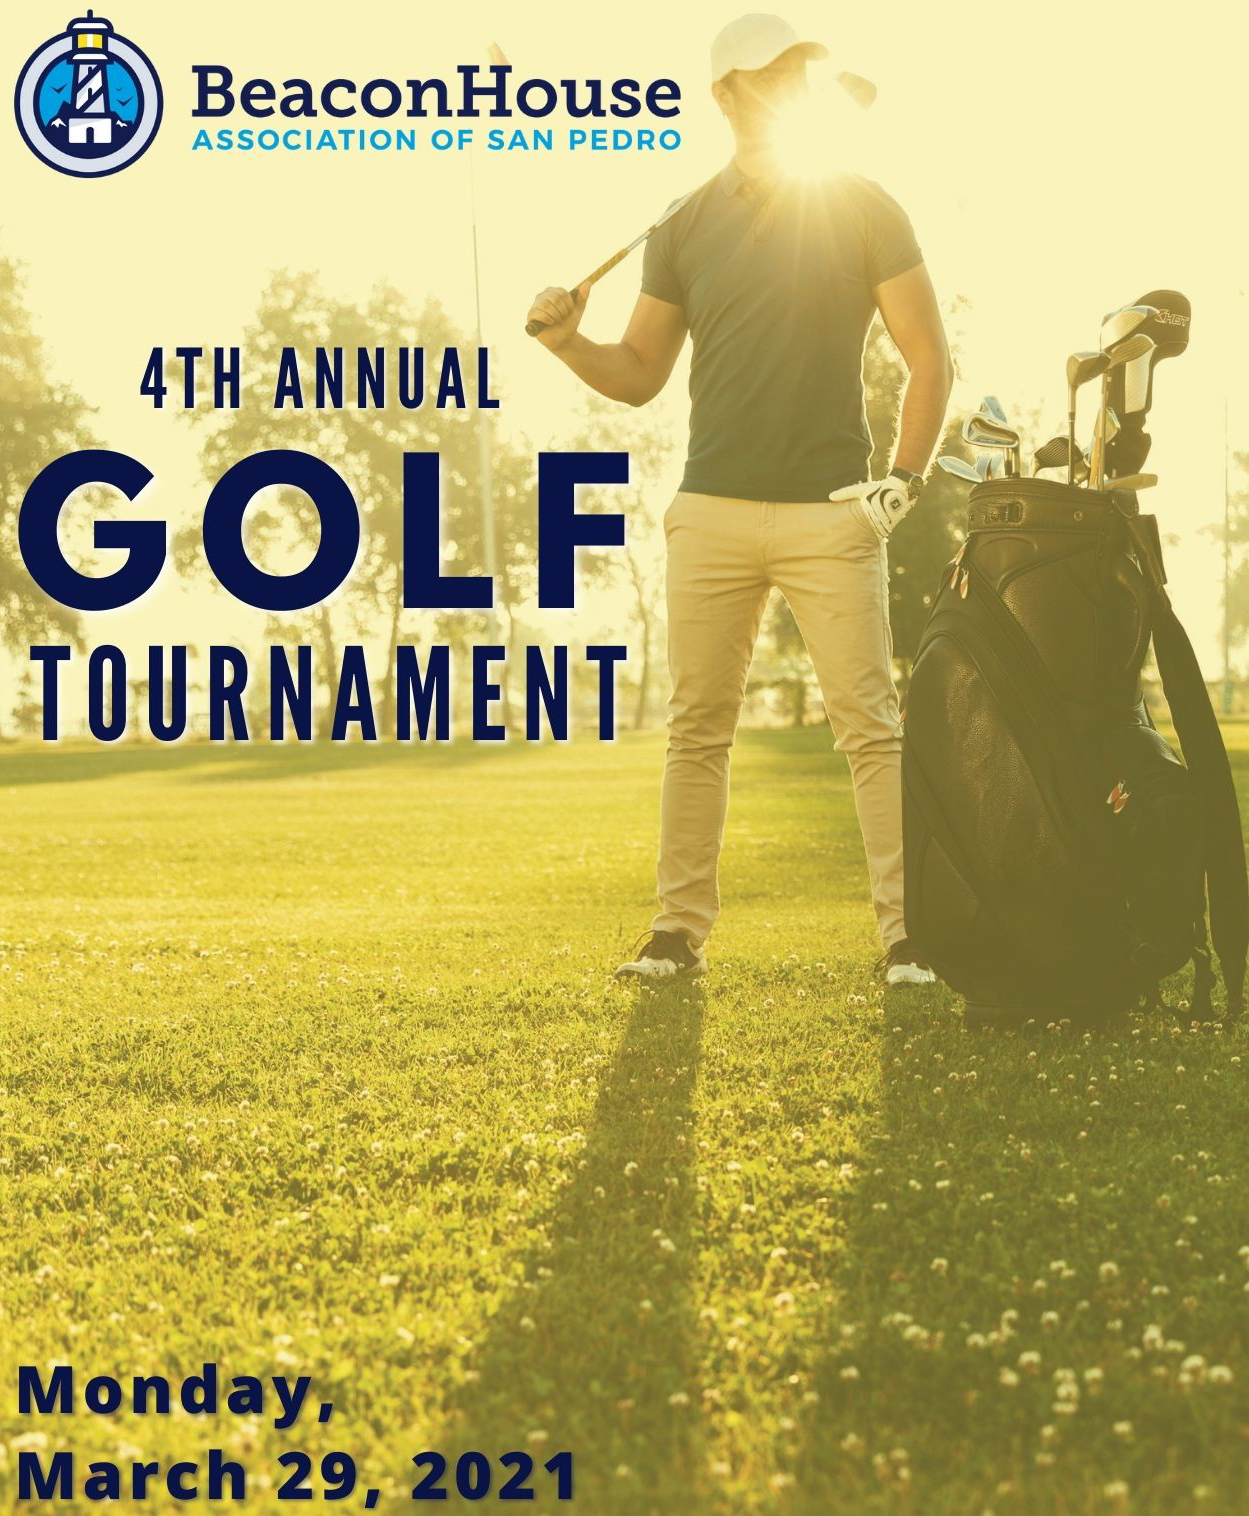 2021 Beacon House Golf Tournament image